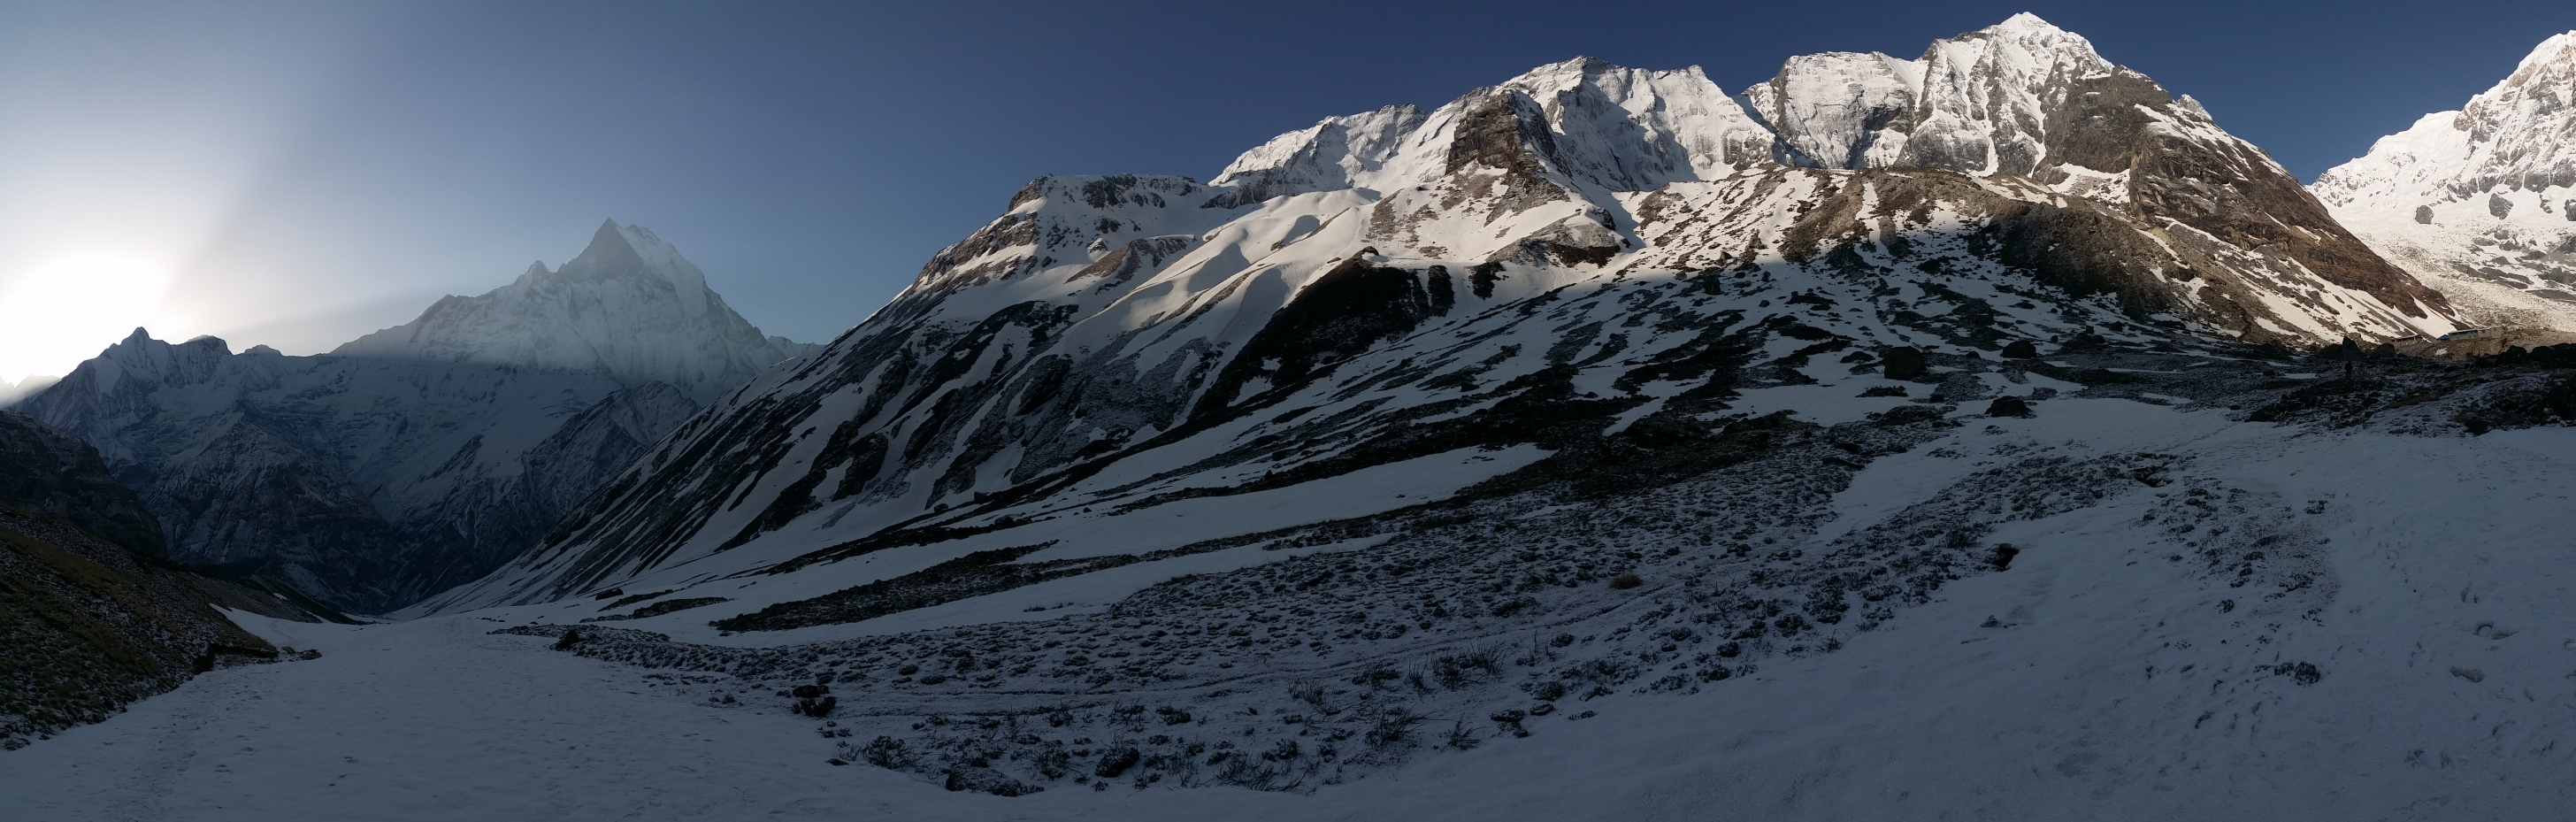 Sunrise Moment of Annapurna Basecamp